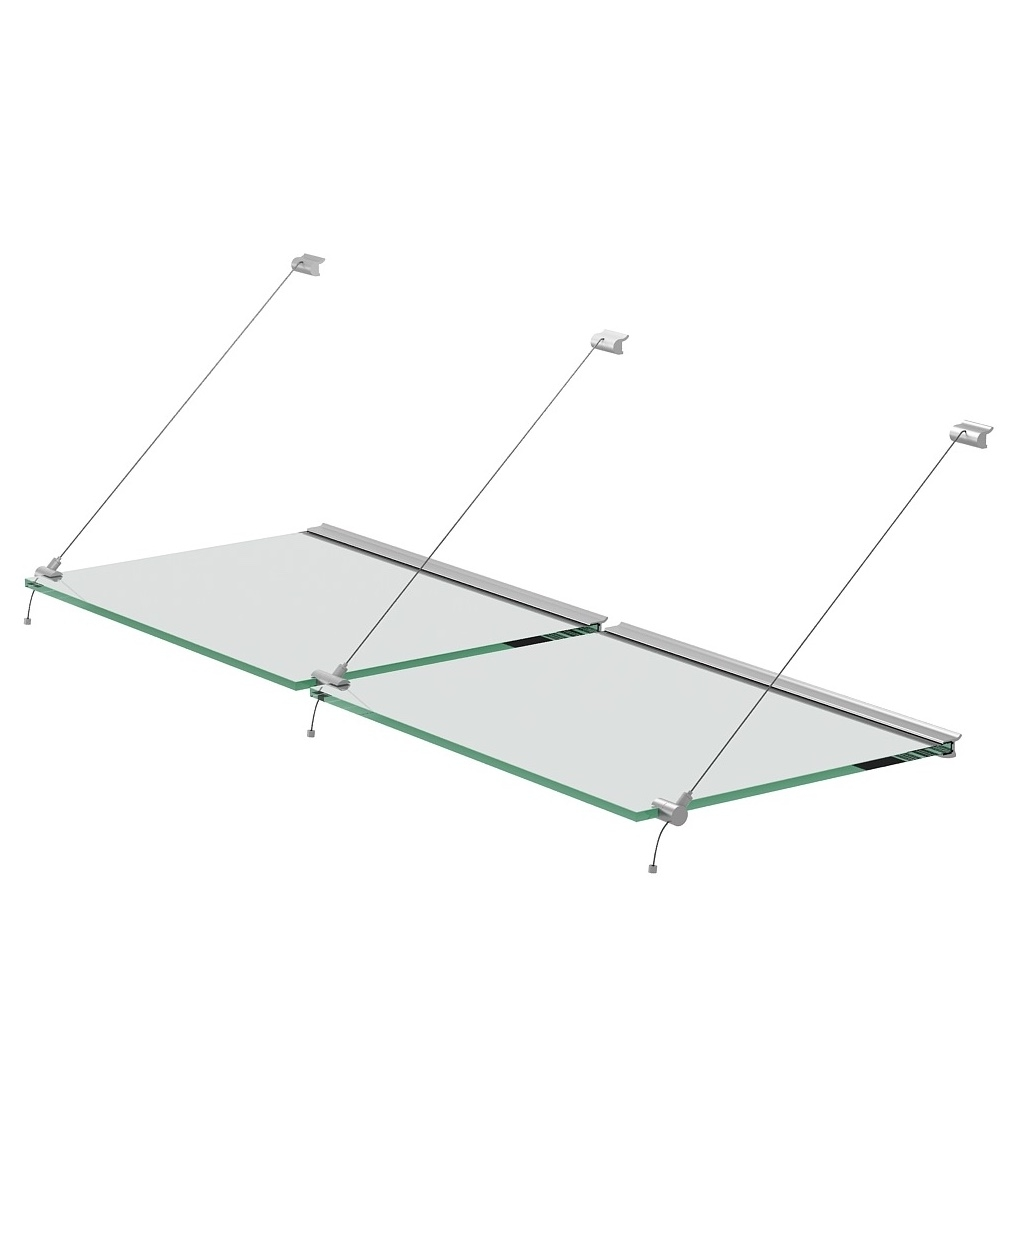 Suspended Glass Shelving Systems Design Modern Shelf Storage And In Wire Suspended Glass Shelves (View 11 of 12)